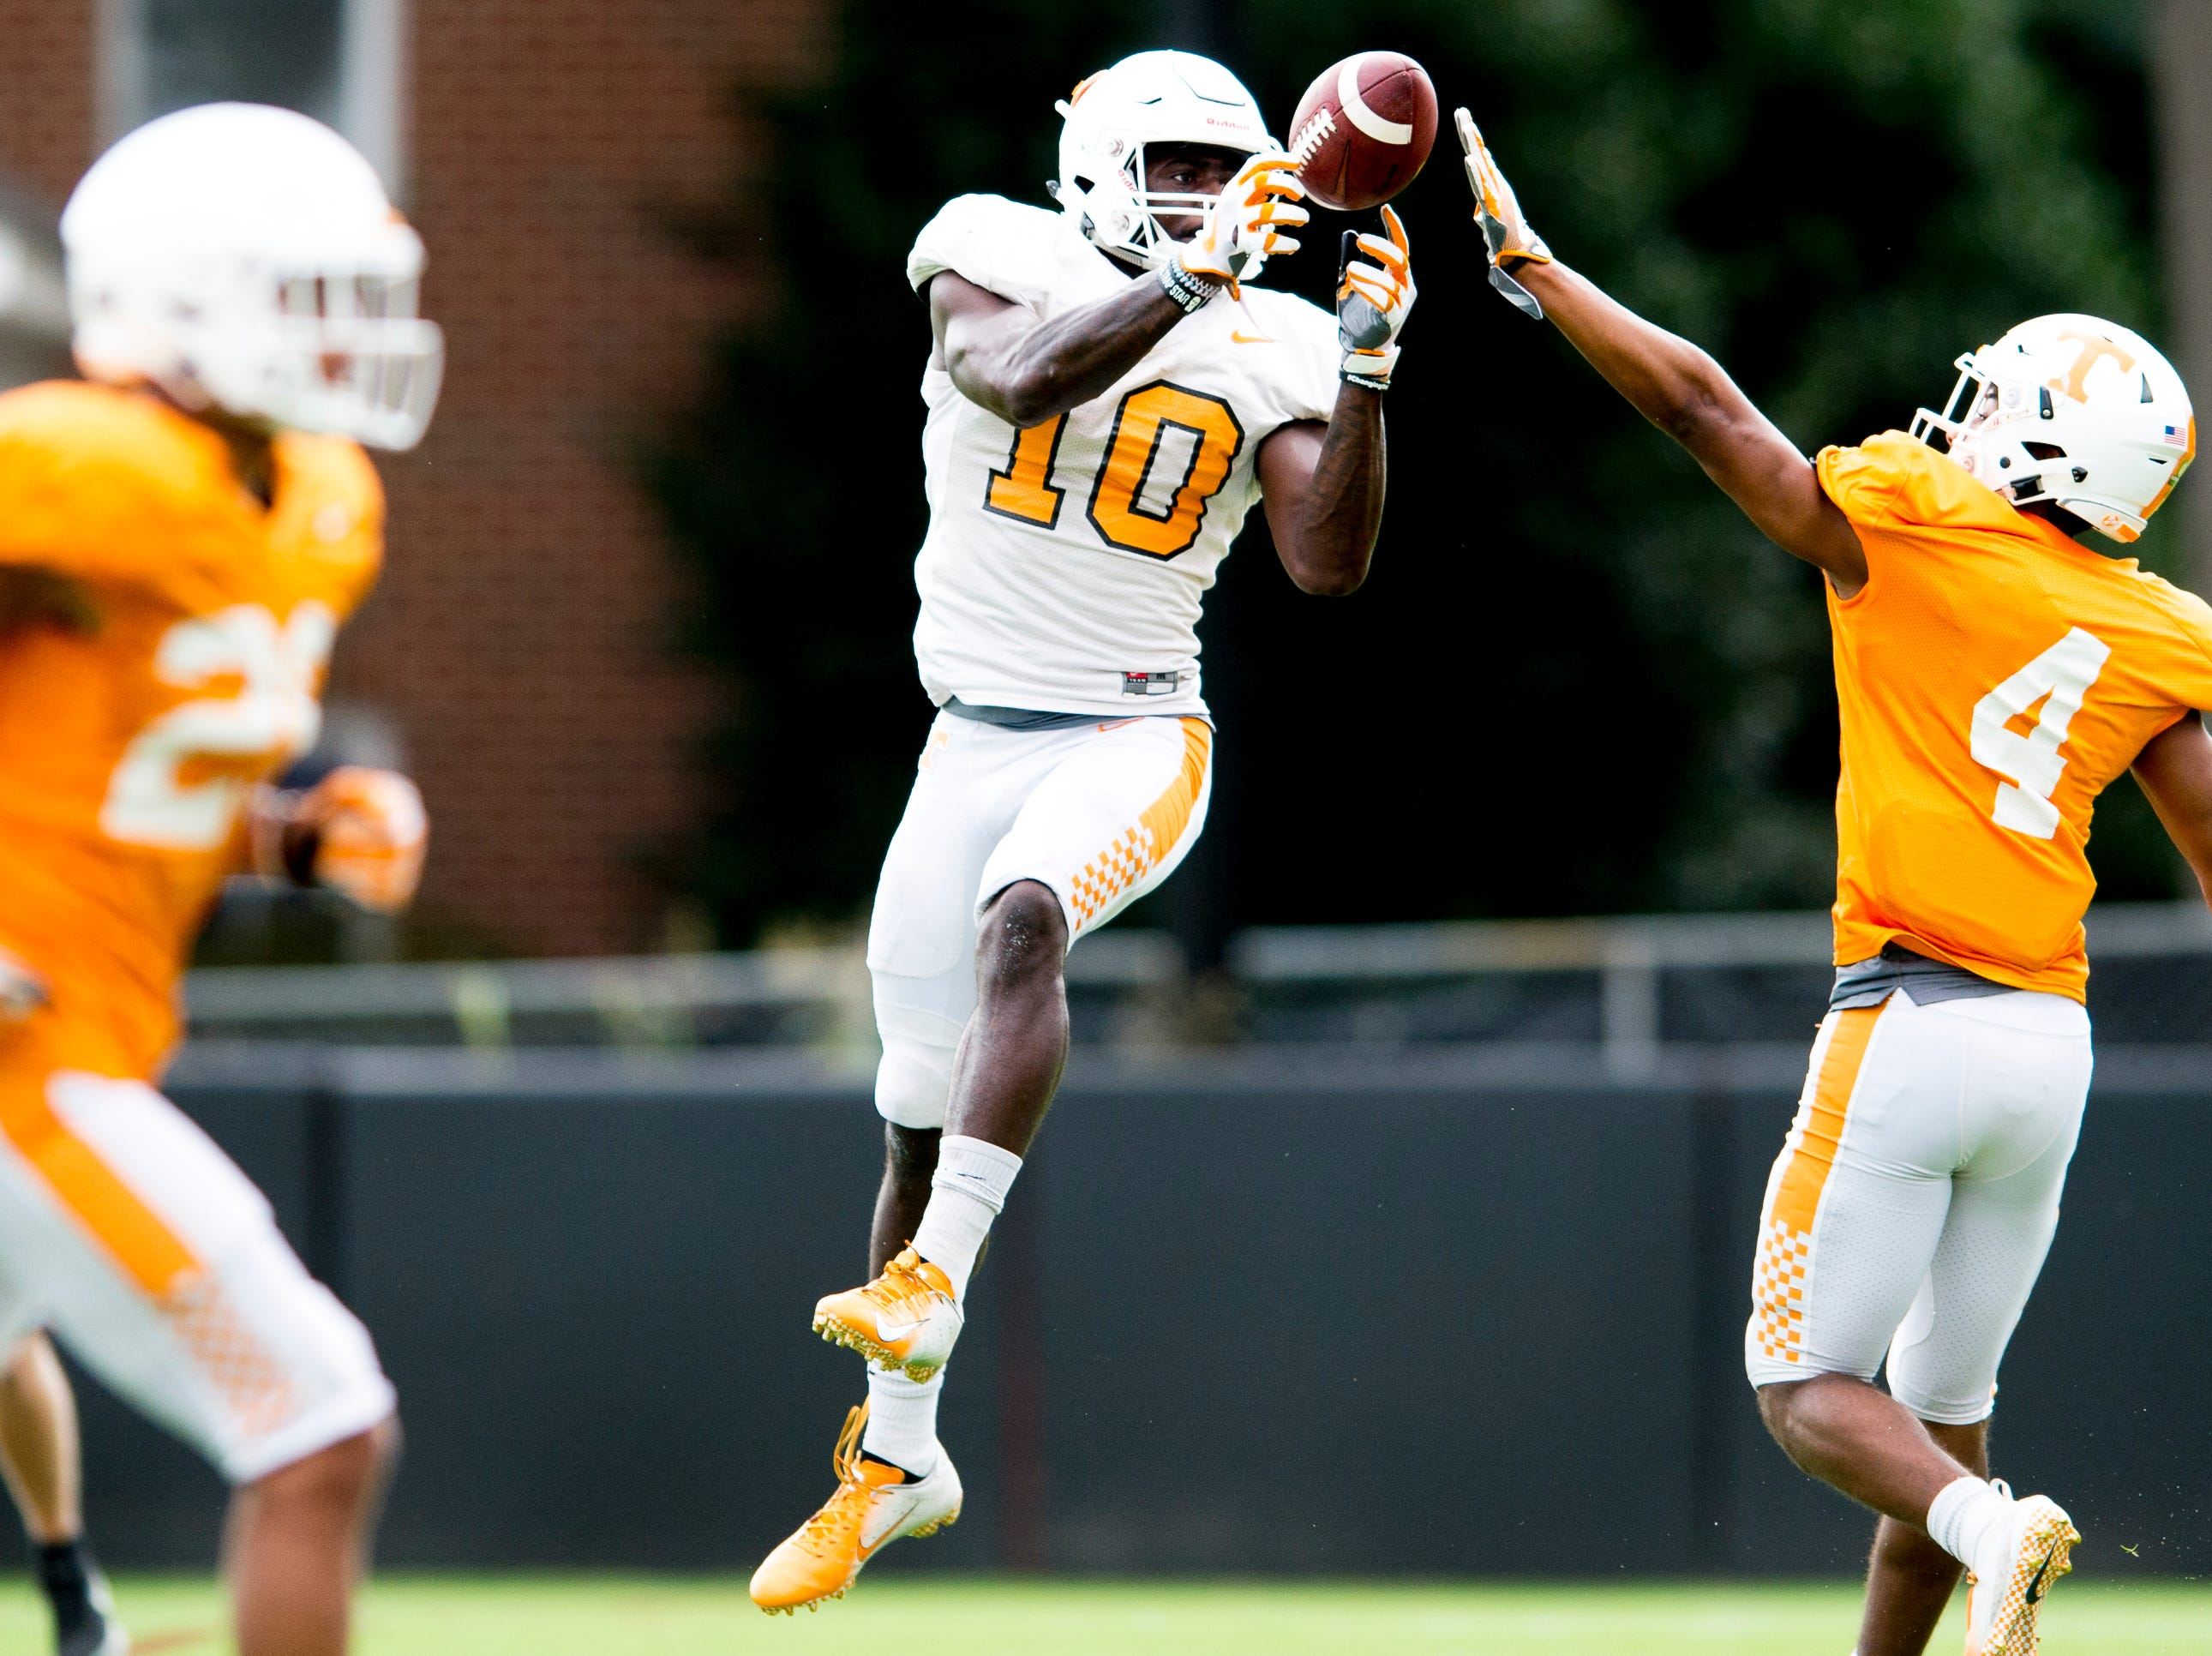 Tennessee wide receiver Tyler Byrd (10) catches a pass past Tennessee defensive back Maleik Gray (4) during Tennessee fall football practice at Haslam Field in Knoxville, Tennessee on Tuesday, October 9, 2018.